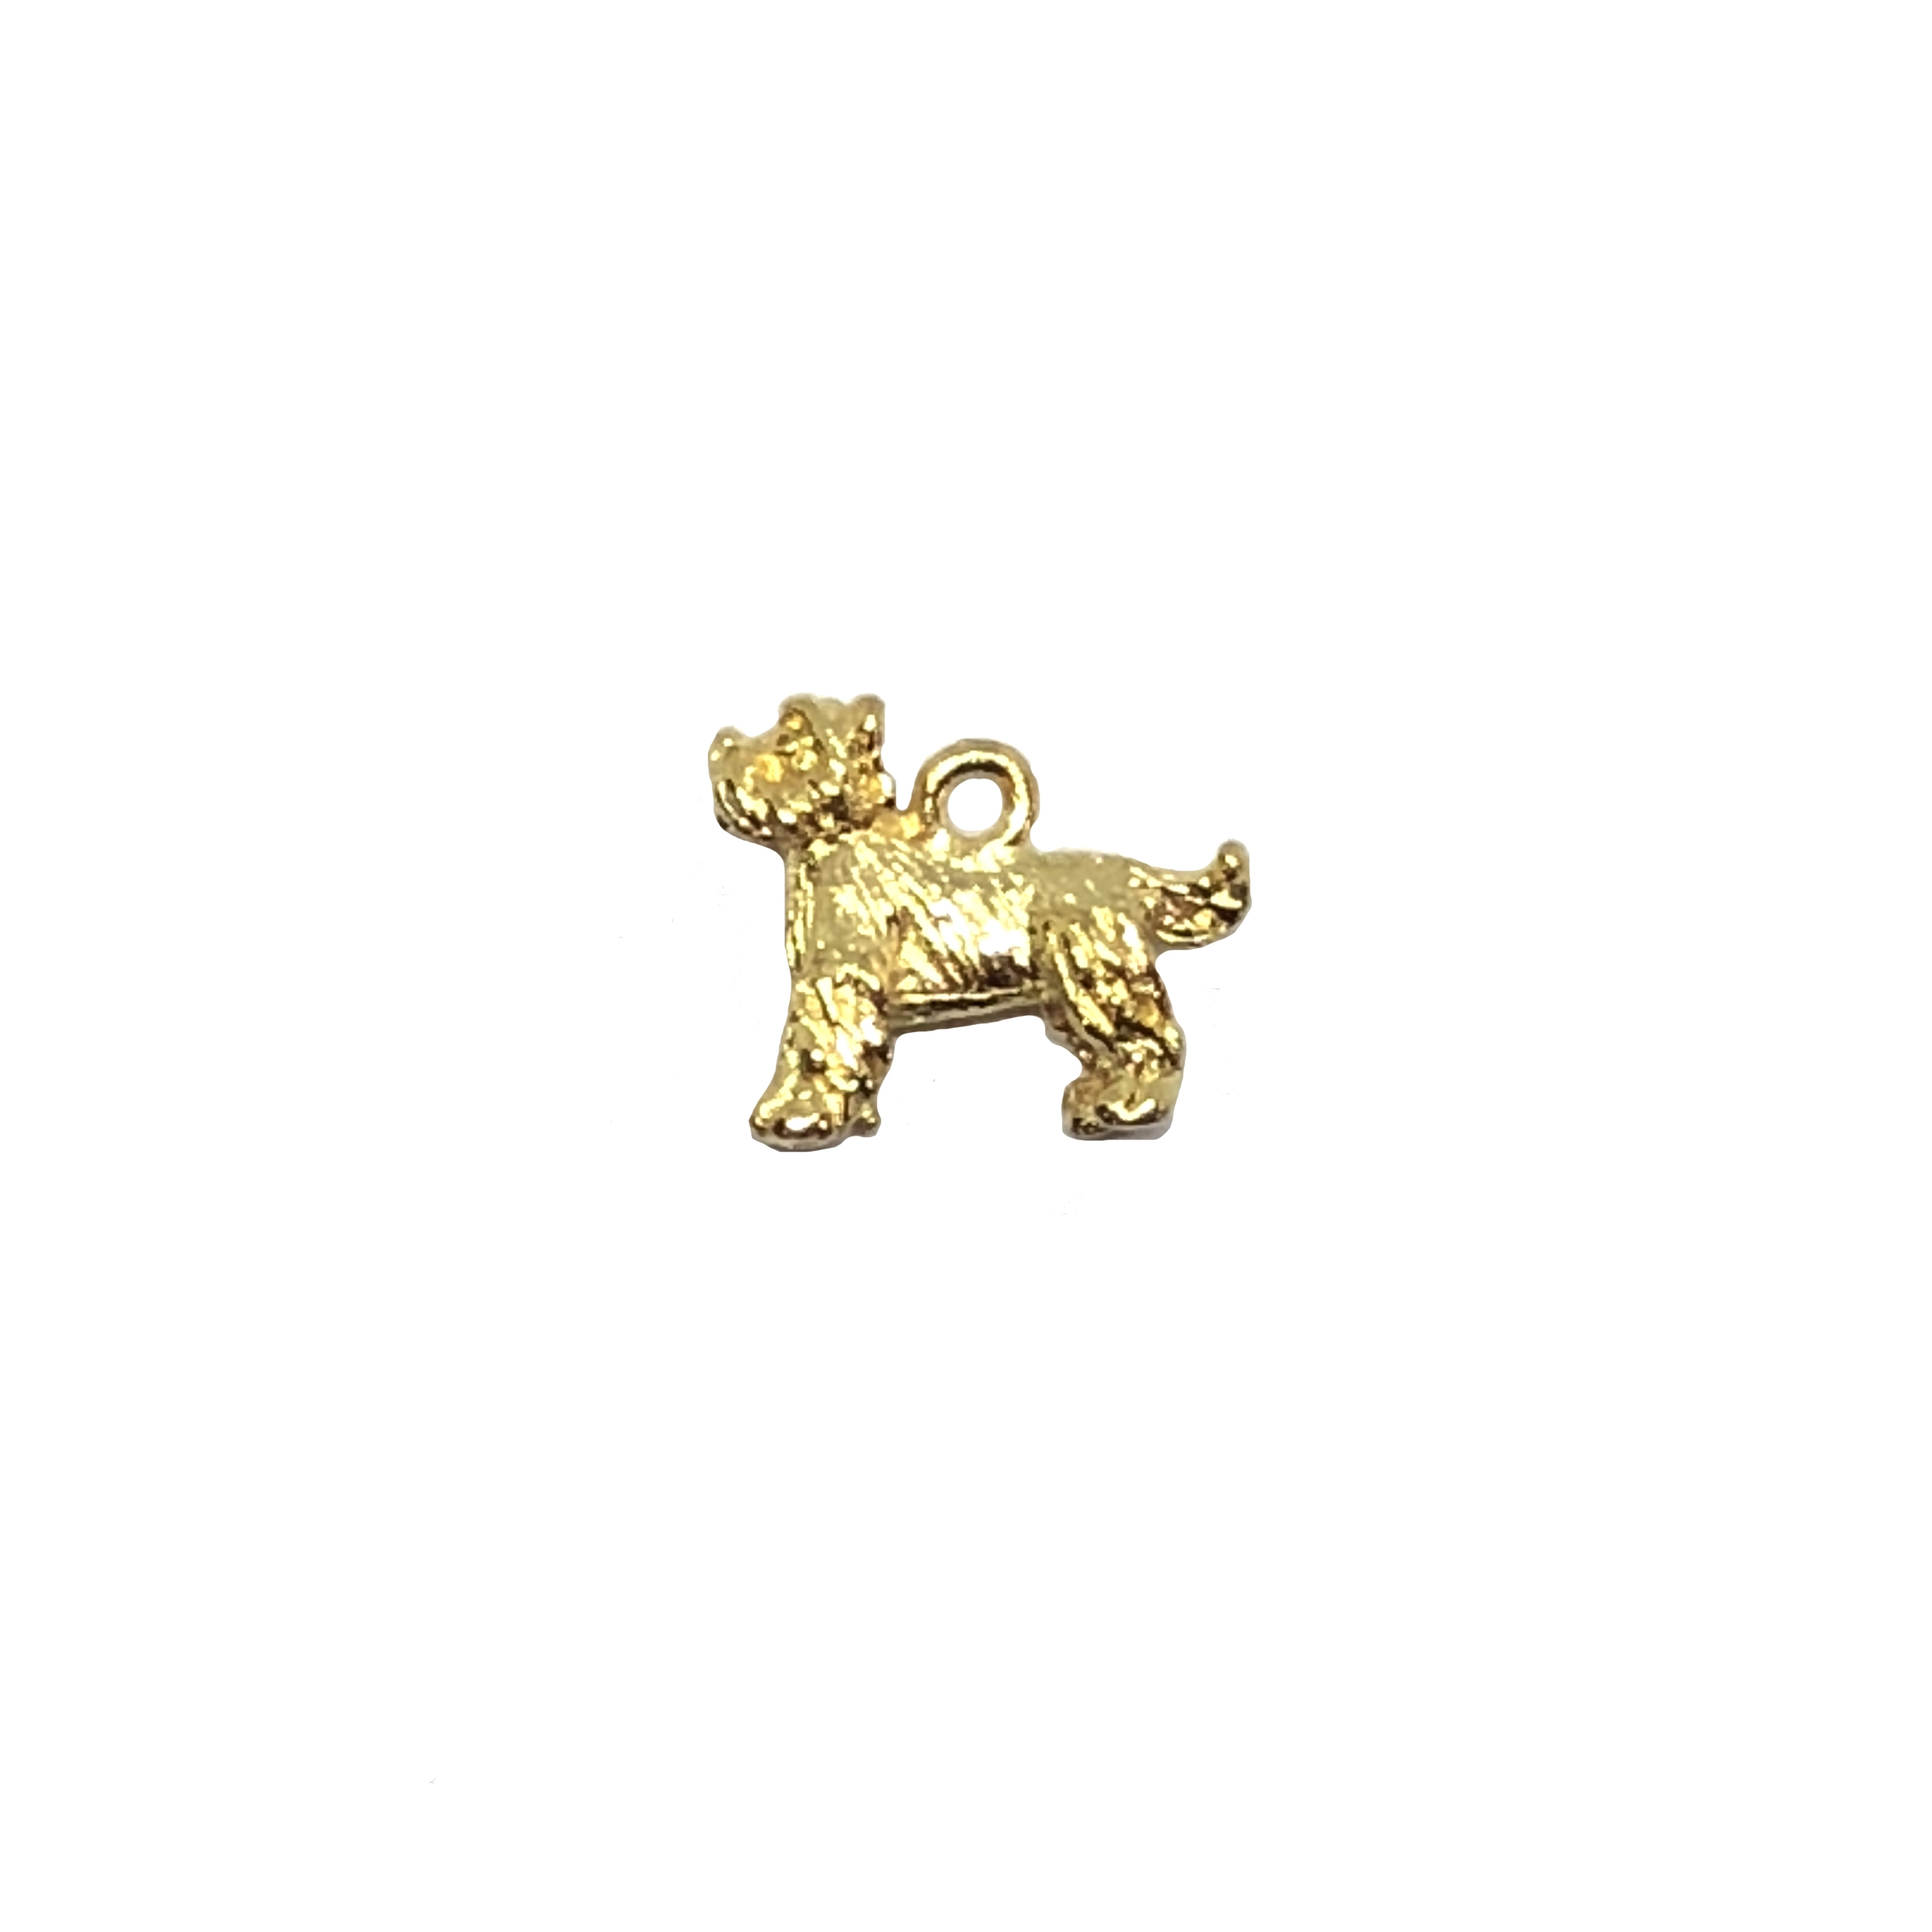 Scottish terrier charm, 22K gold finish pewter, B'sue by 1928, jewelry charm, dog stamping, dog, dog charm, charm, Scottish terrier, gold, lead free pewter, gold finish, US made, designer jewelry, vintage supplies, B'sue Boutiques, 16x12mm, 08528